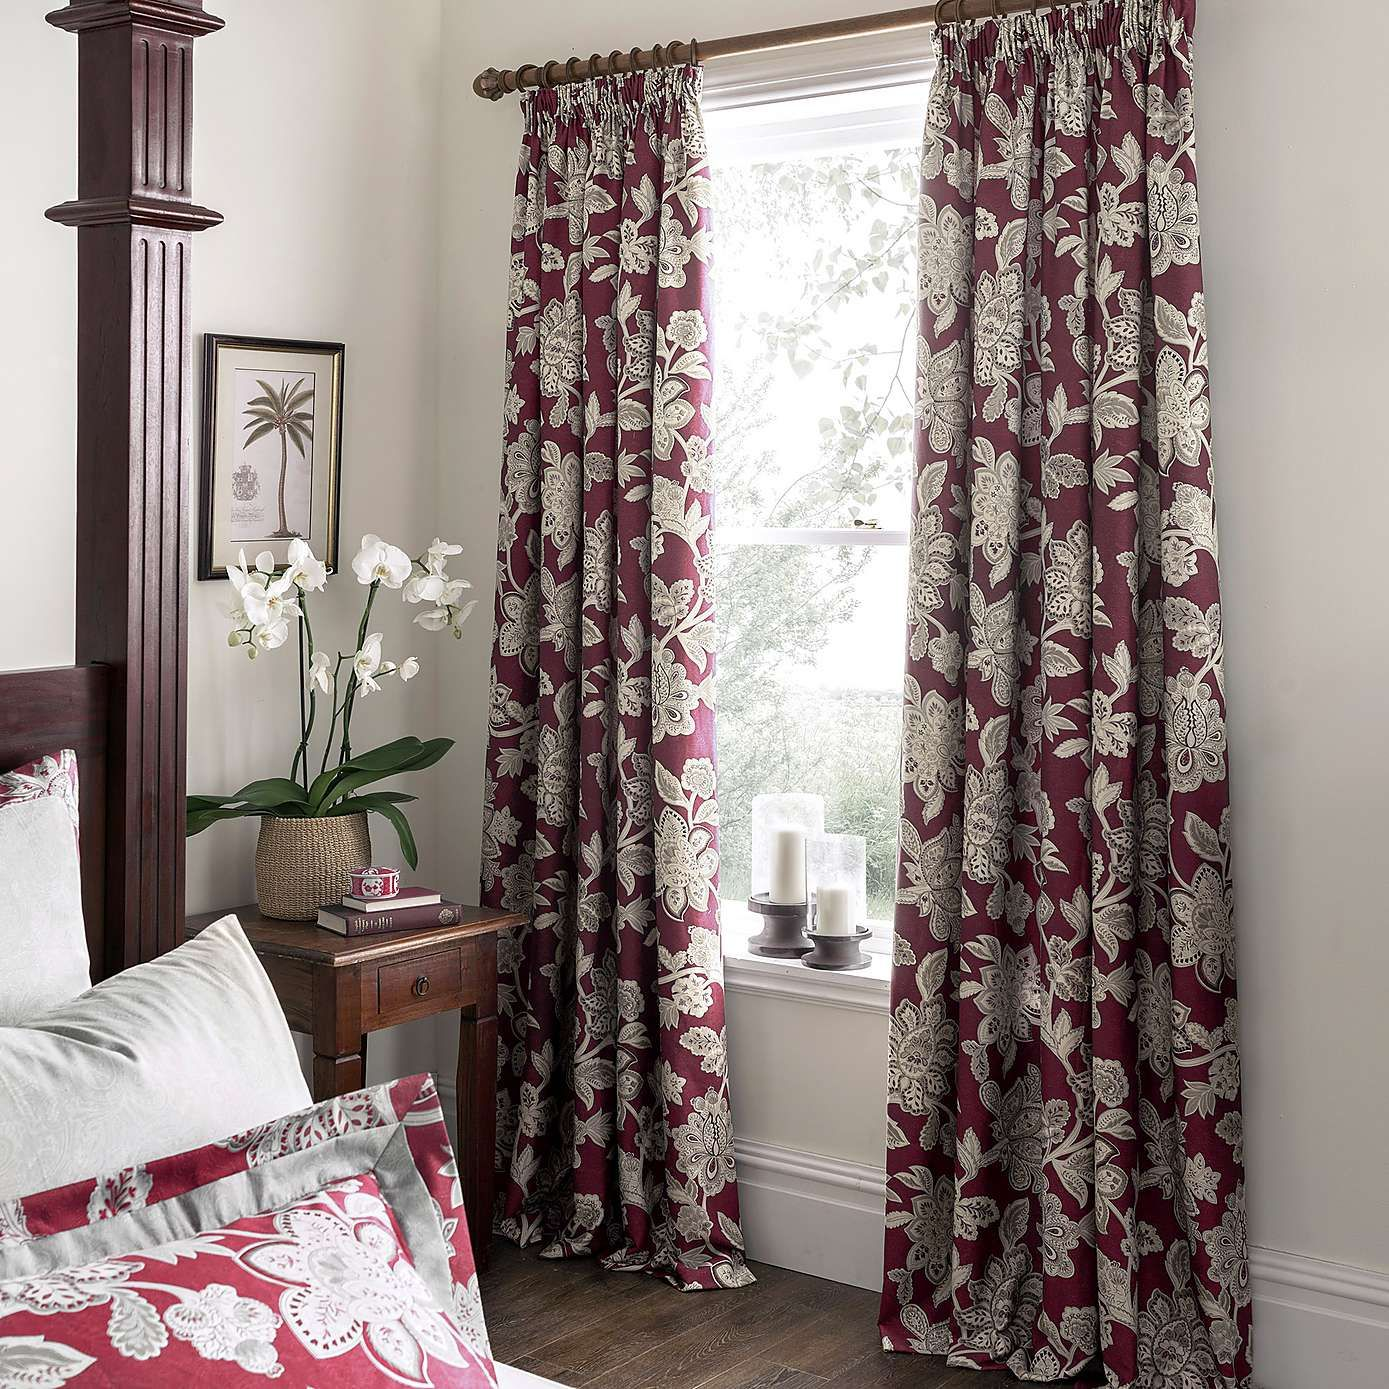 Lush Decor Lake Como Curtains Dorma Samira Red Lined Pencil Pleat Curtains Dunelm Curtain